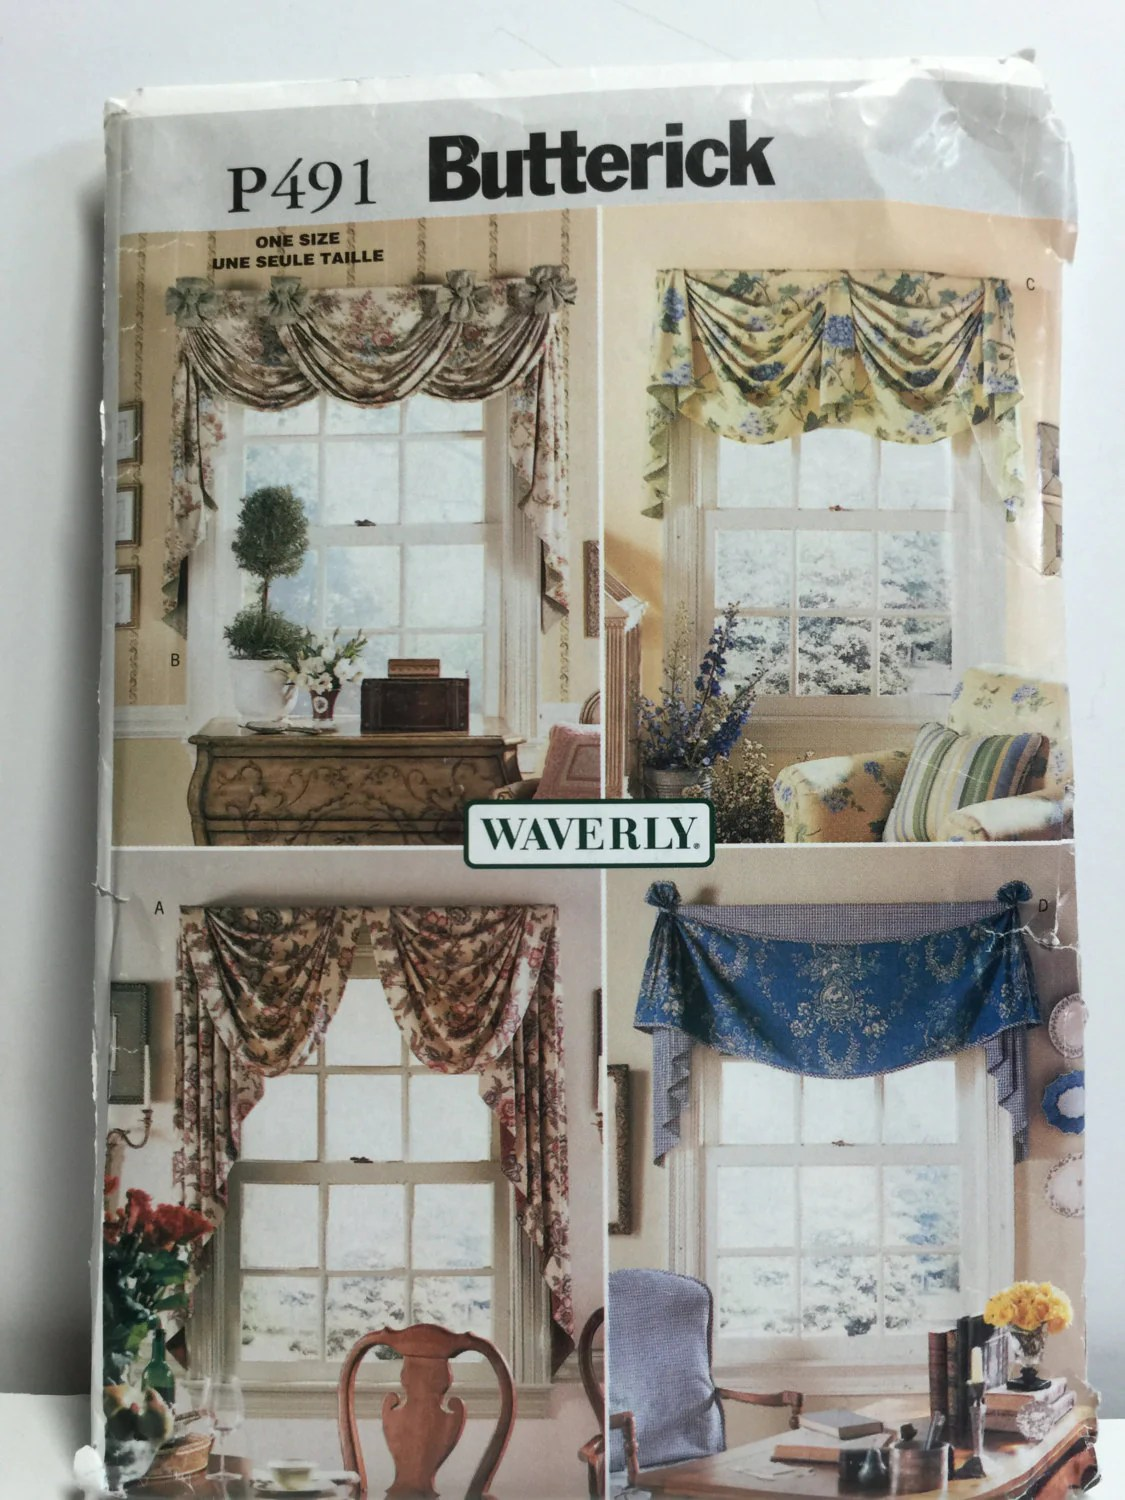 Butterick P491 Waverly Window Treatments Valances Sewing